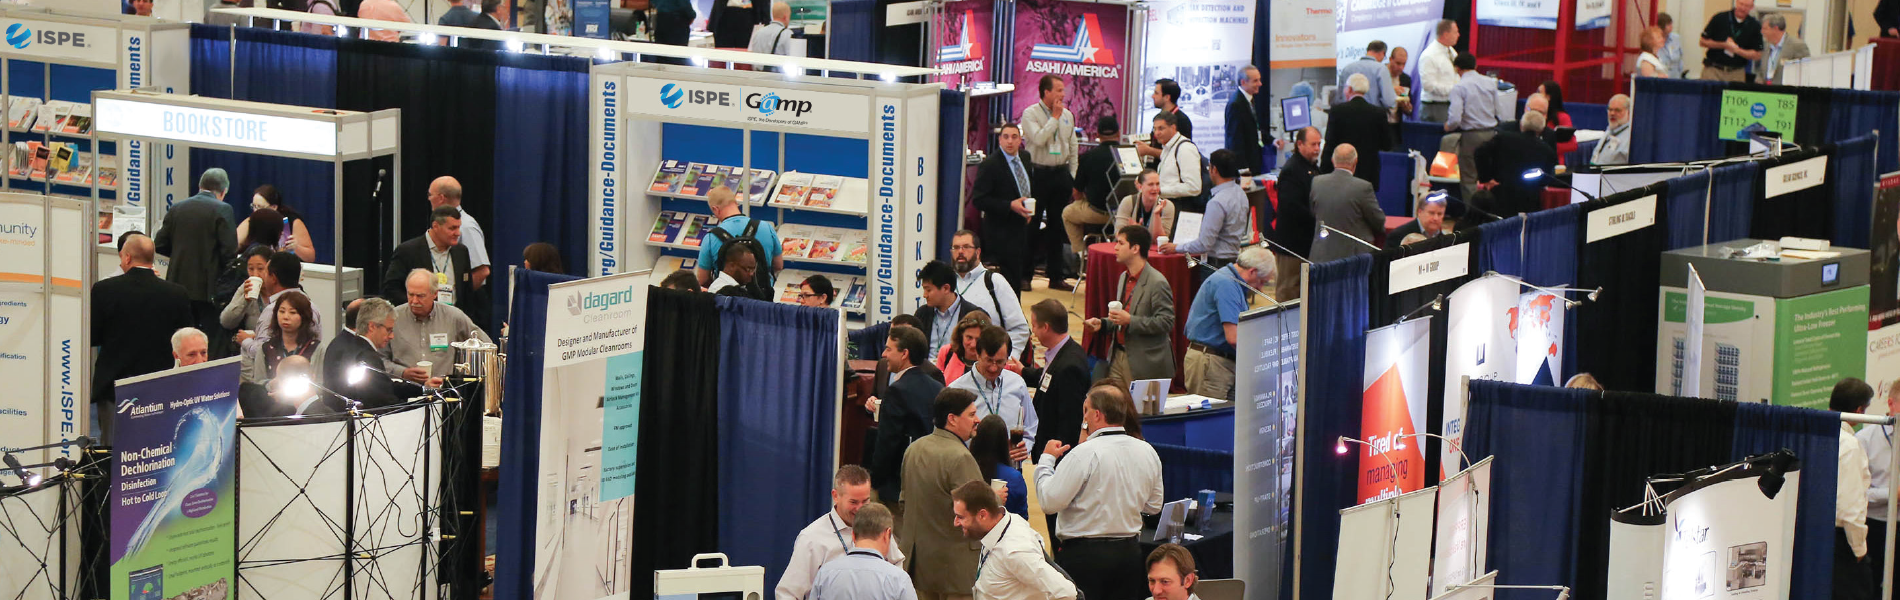 Exhibit and Sponsorship Opportunities at ISPE Conferences & Events